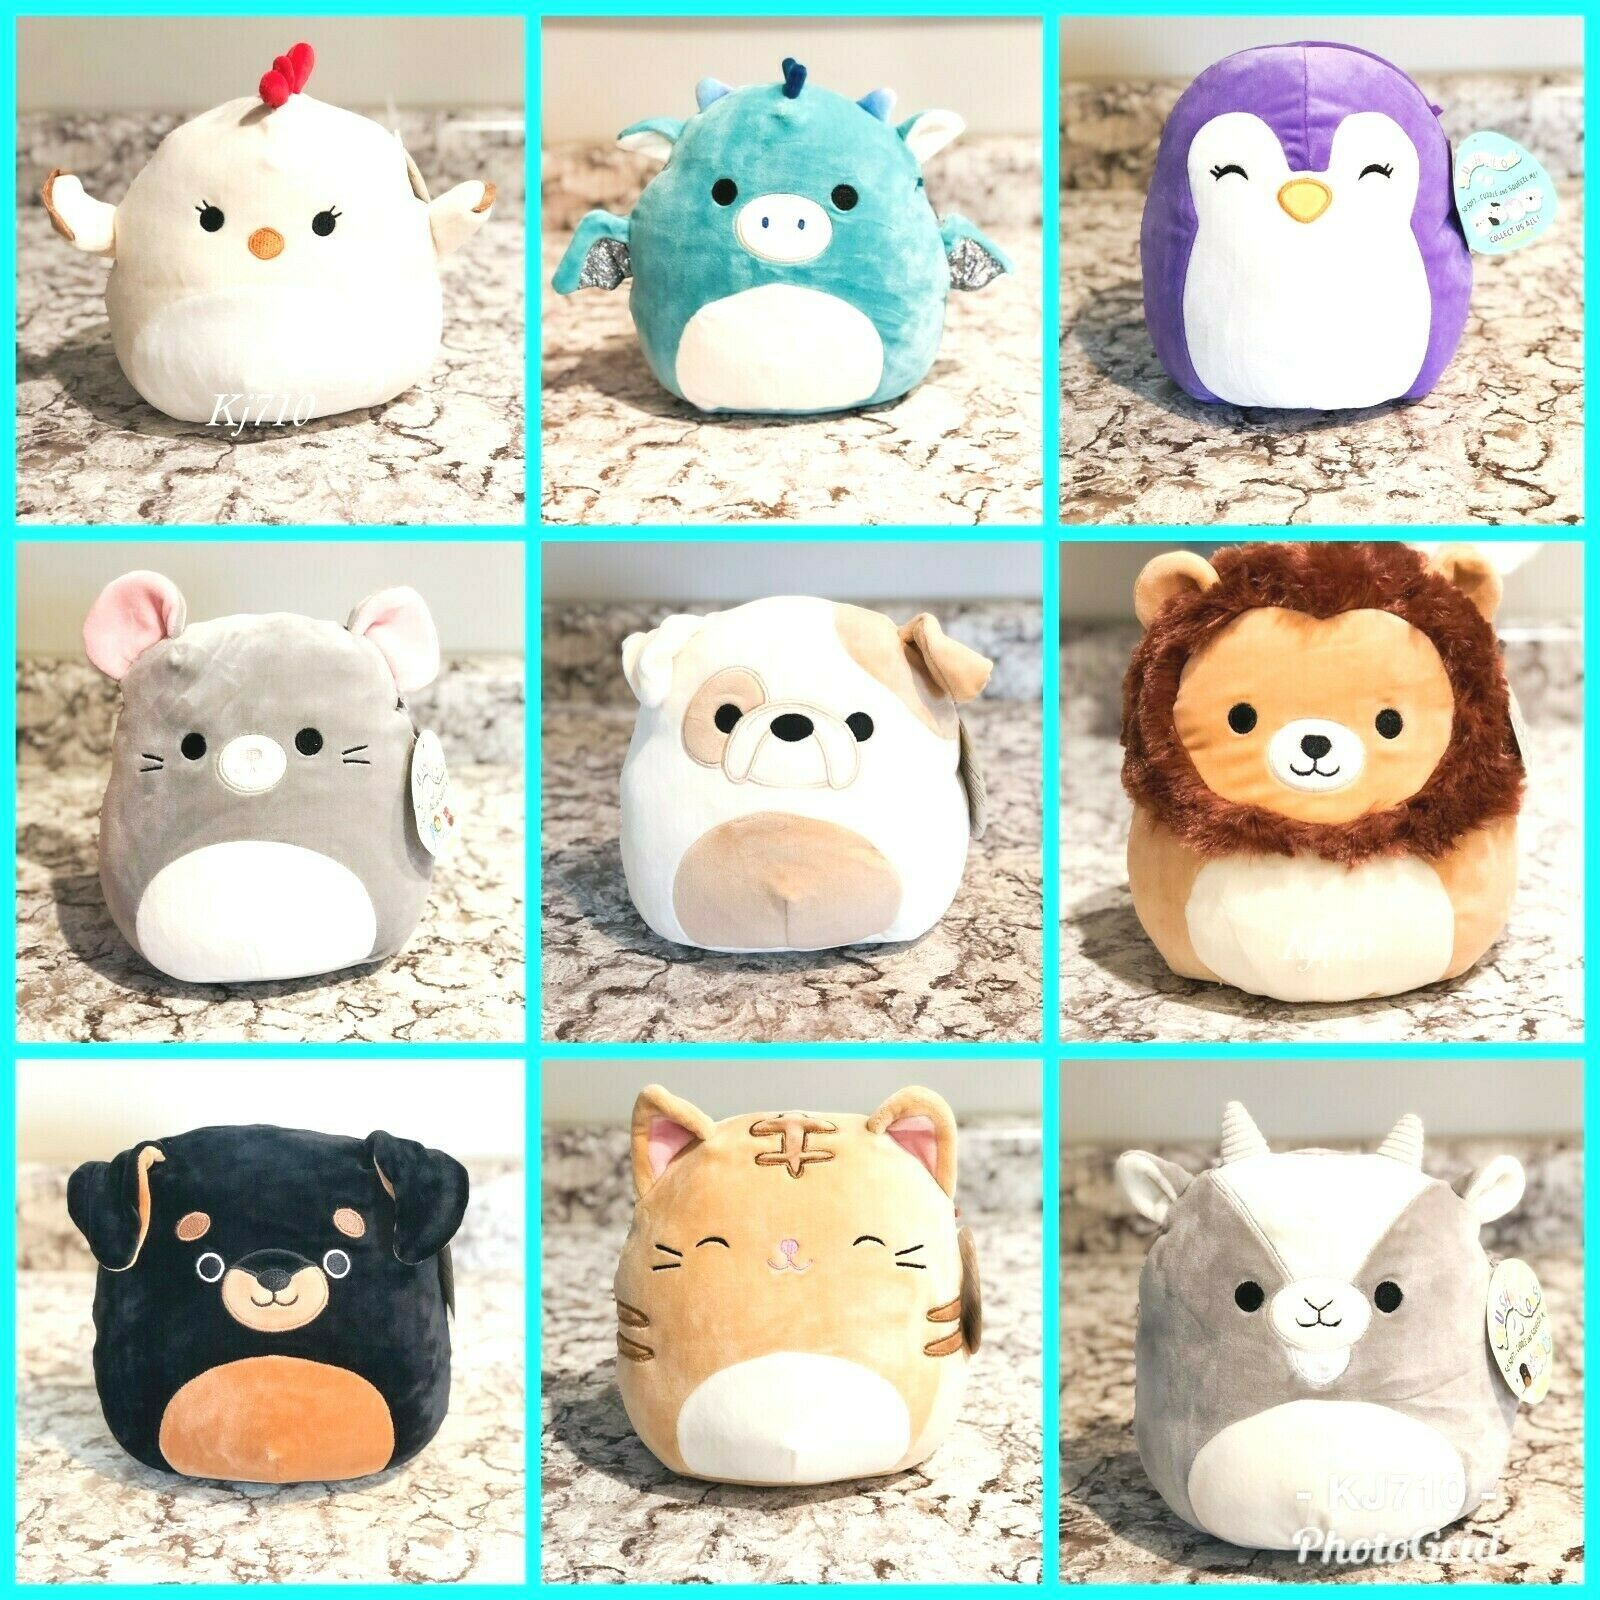 Sale Squishmallow 8 Chicken Dragon Cat Goat Dog Kellytoy Plush Pillow Animal Chicken Chicken Chic Sewing Stuffed Animals Cute Stuffed Animals Plush Animals